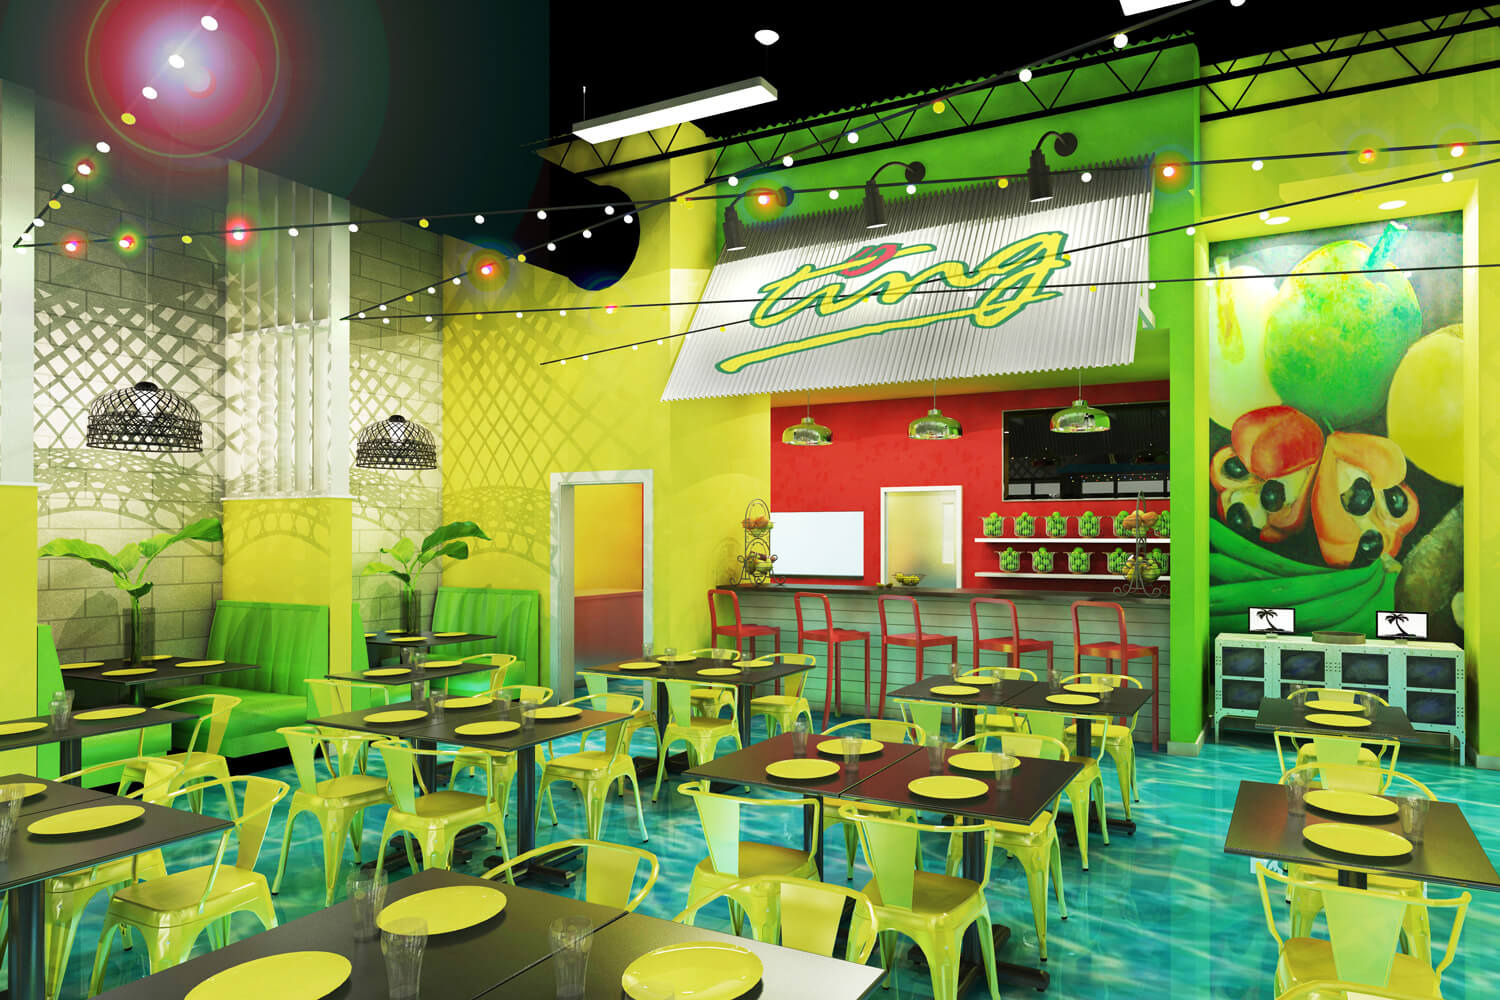 Island Delight Restaurant Designed by Foshee Architecture - Artist Depiction and Rendering of Interior Looking Towards the Juice Bar